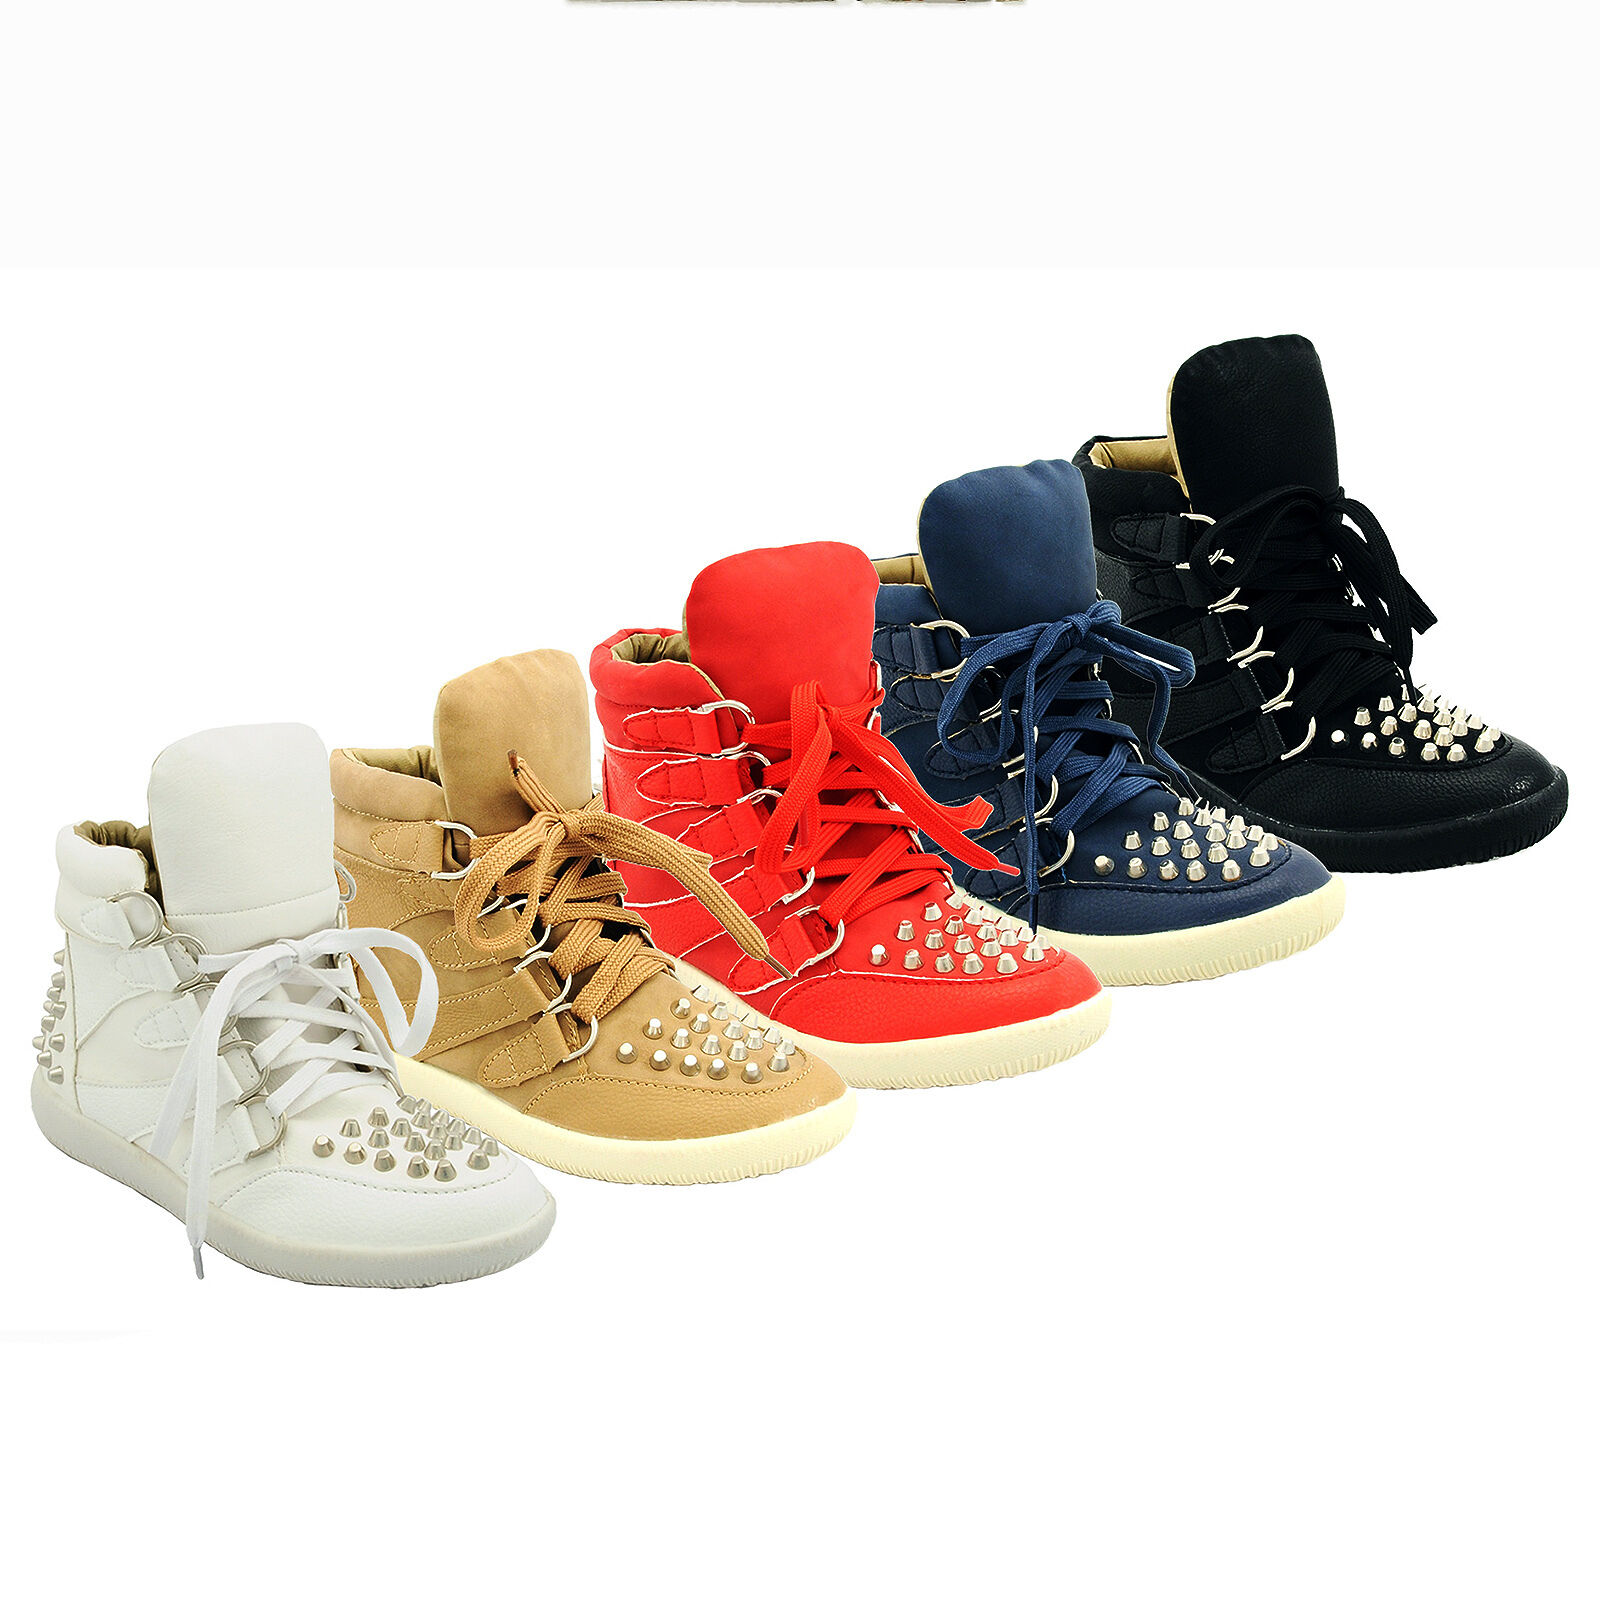 NEW Mujer LADIES GIRLS LACE UP STUDDED 929-70 HI-TOP TRAINERS SNEAKERS Talla 3-8 929-70 STUDDED f79c15